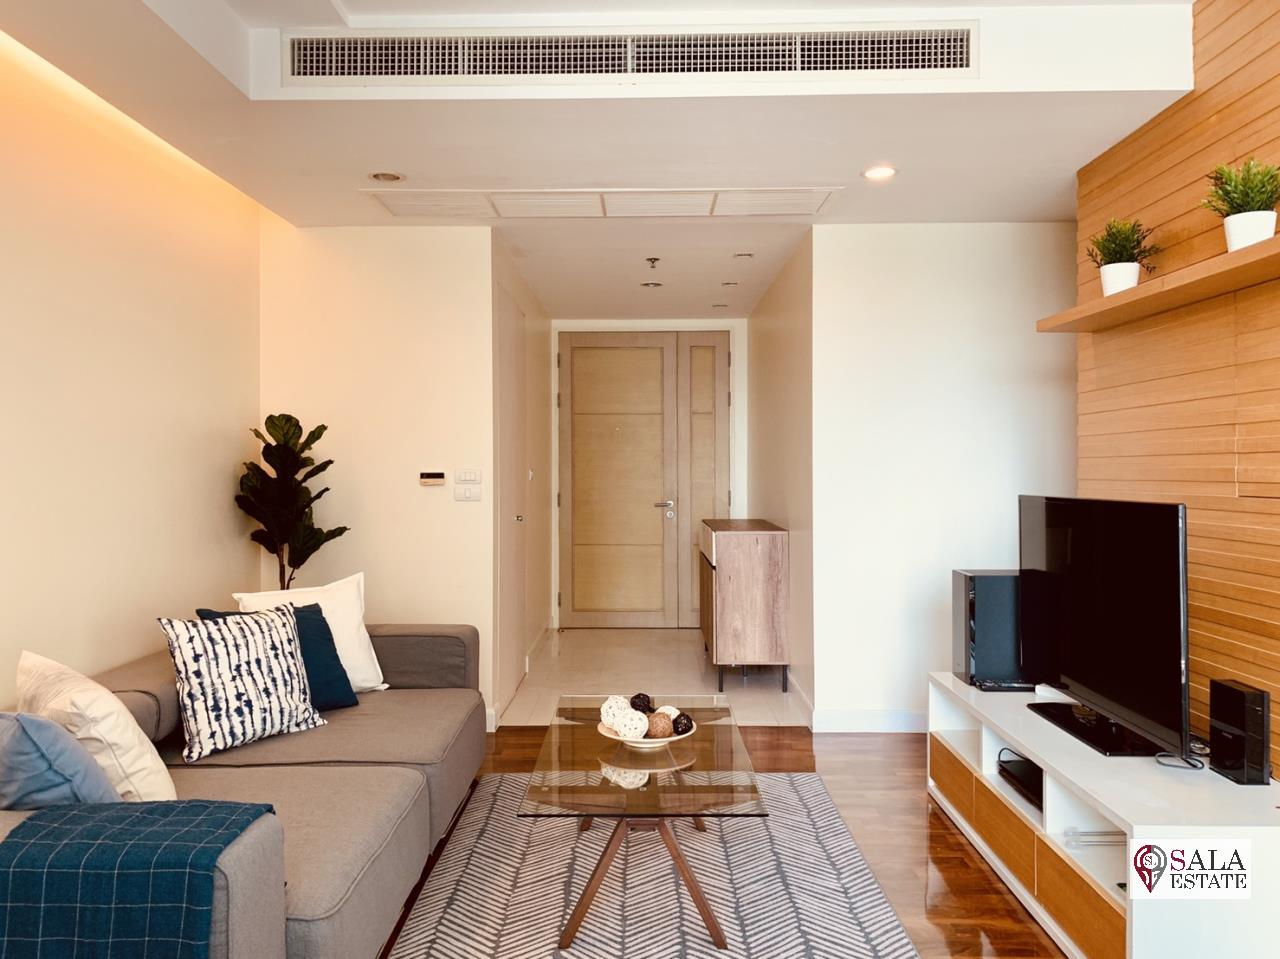 SALA ESTATE Agency's ( FOR RENT ) BAAN SIRI 31 – BTS PHROM PHONG, 58 SQM 1 BEDROOM 1 BATHROOM, FULLY FURNISHED, CITY VIEW 2